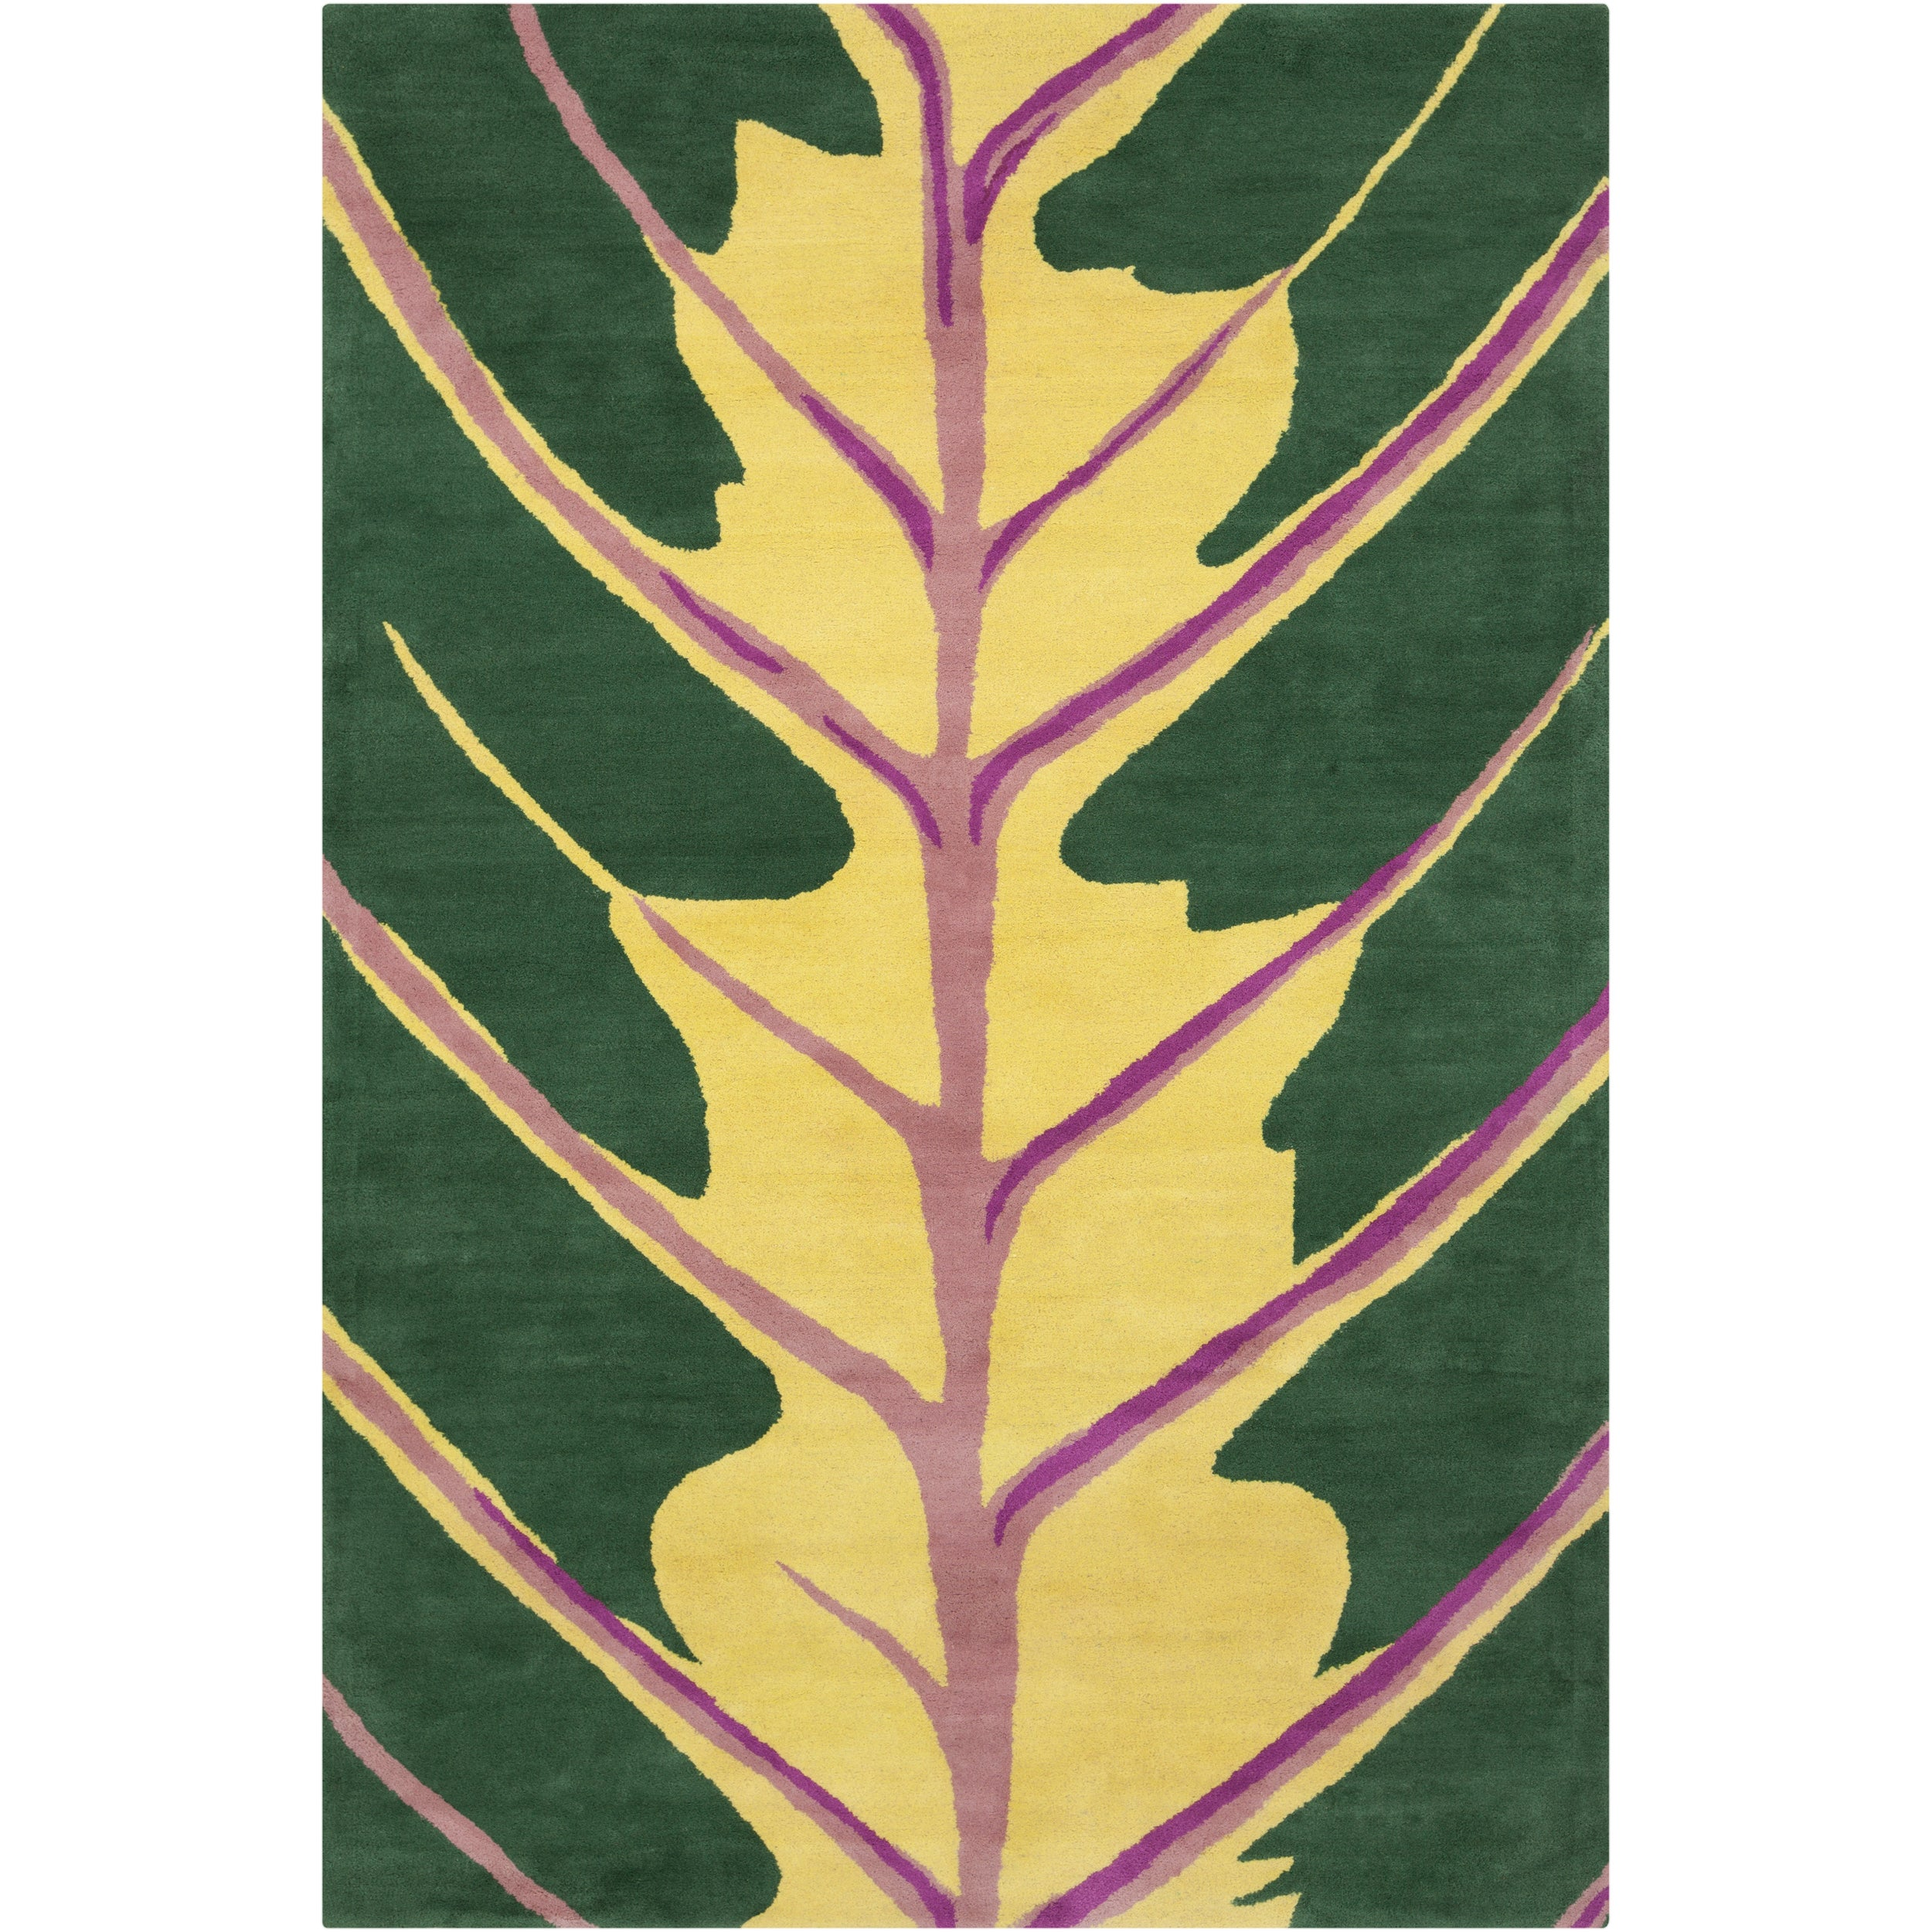 Filament Allie Handmade Green Wool Rug (5' x 7'6) at Sears.com